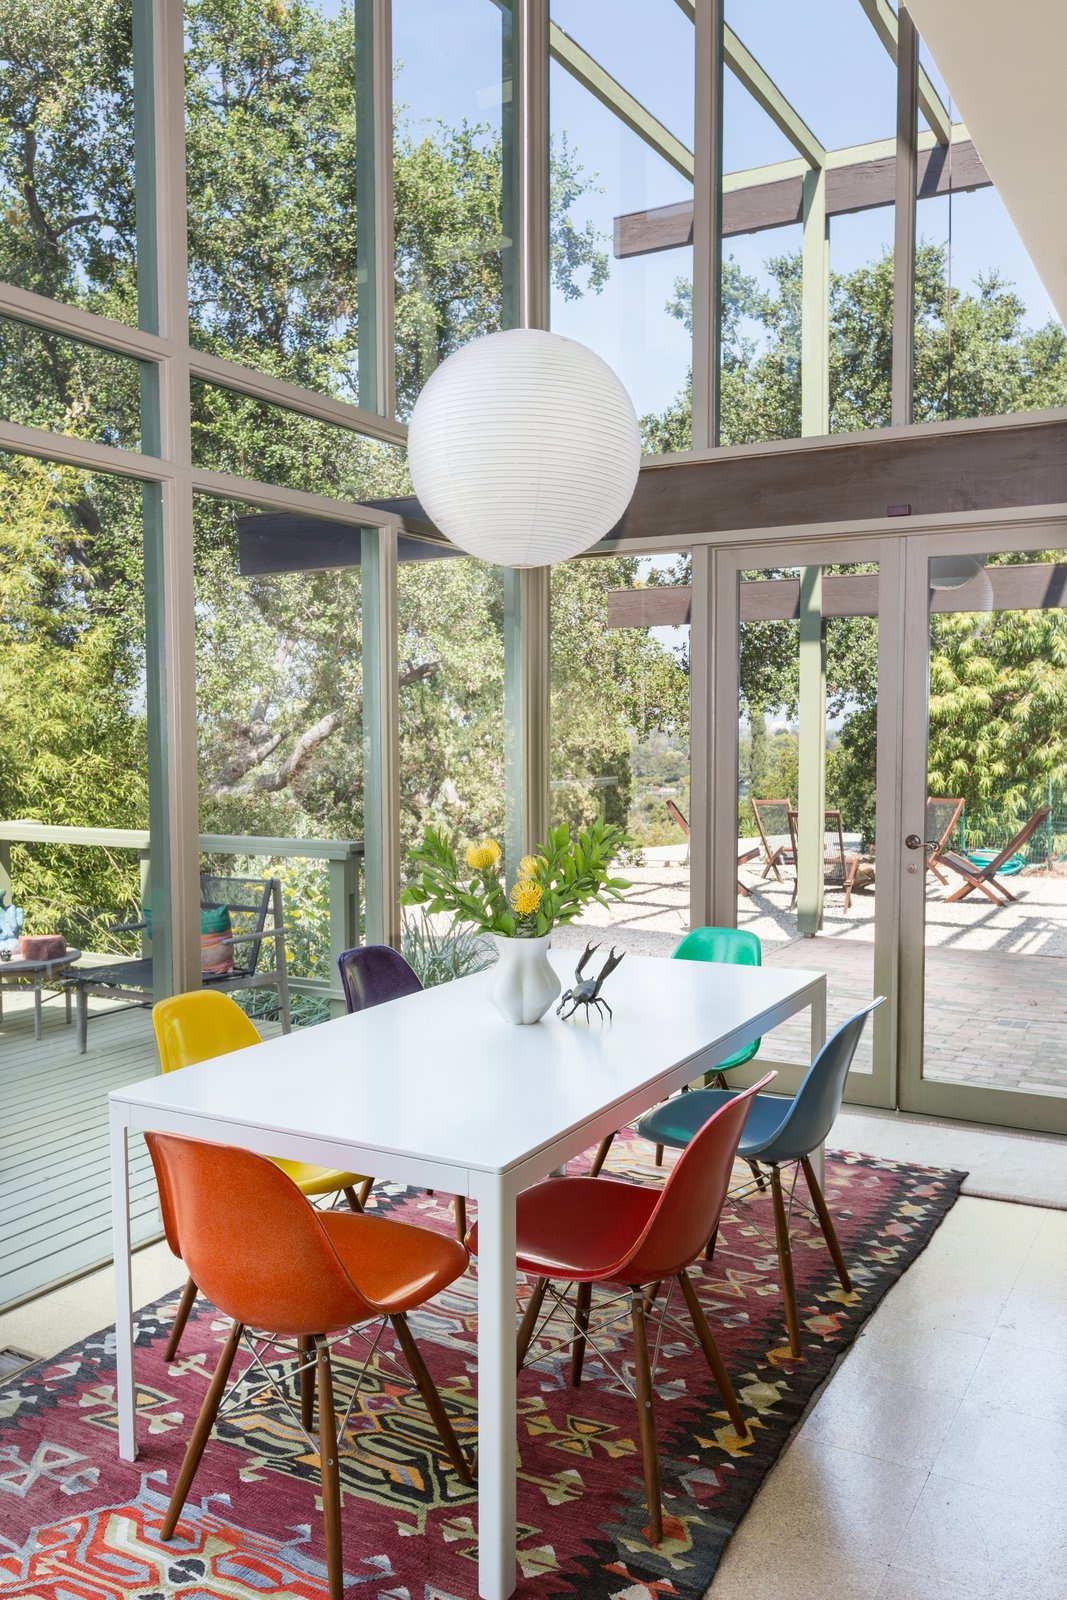 Dining Room, Table, Pendant Lighting, Chair, and Rug Floor Double-height ceilings over the open dining area helps to create a nice, airy vibe.  Best Photos from Mad Men Producer Puts His Pasadena Midcentury Up For Auction Starting at $1.7M